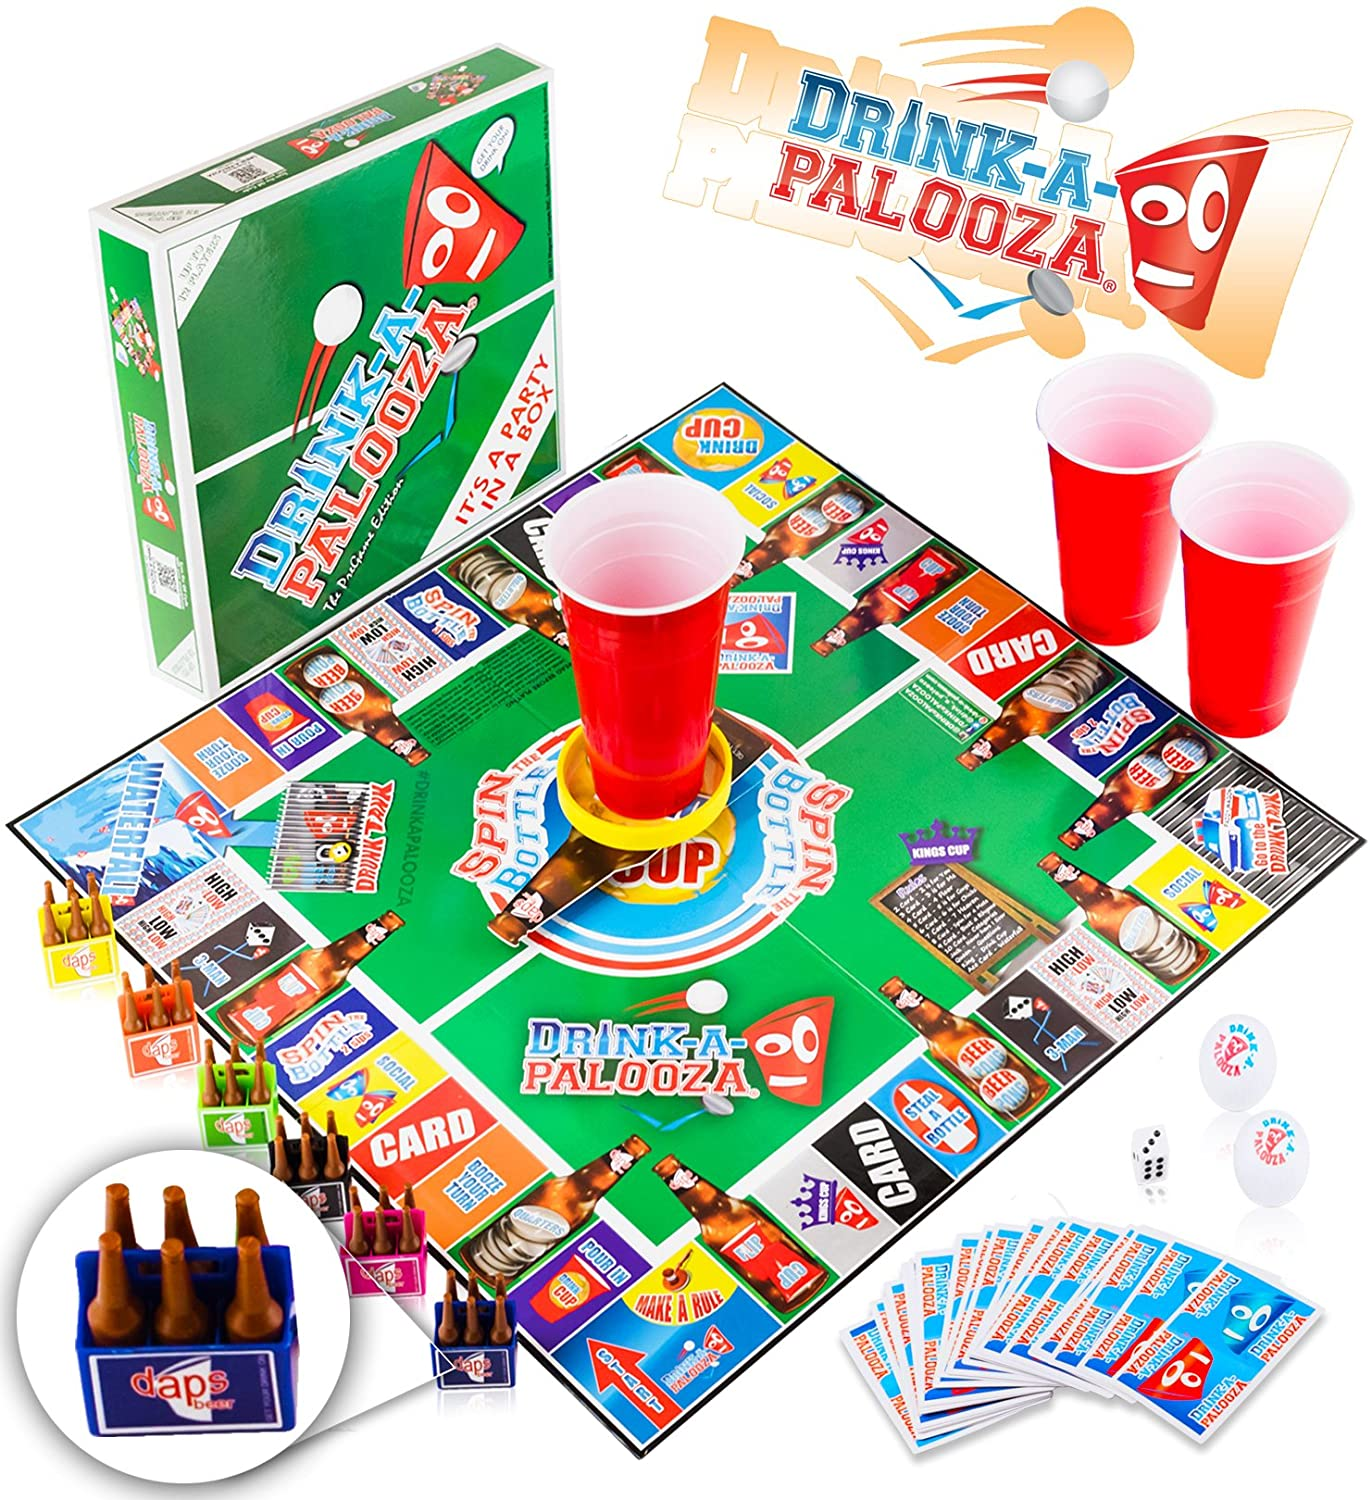 DRINK-A-PALOOZA Party Game: the Drinking Game that combines